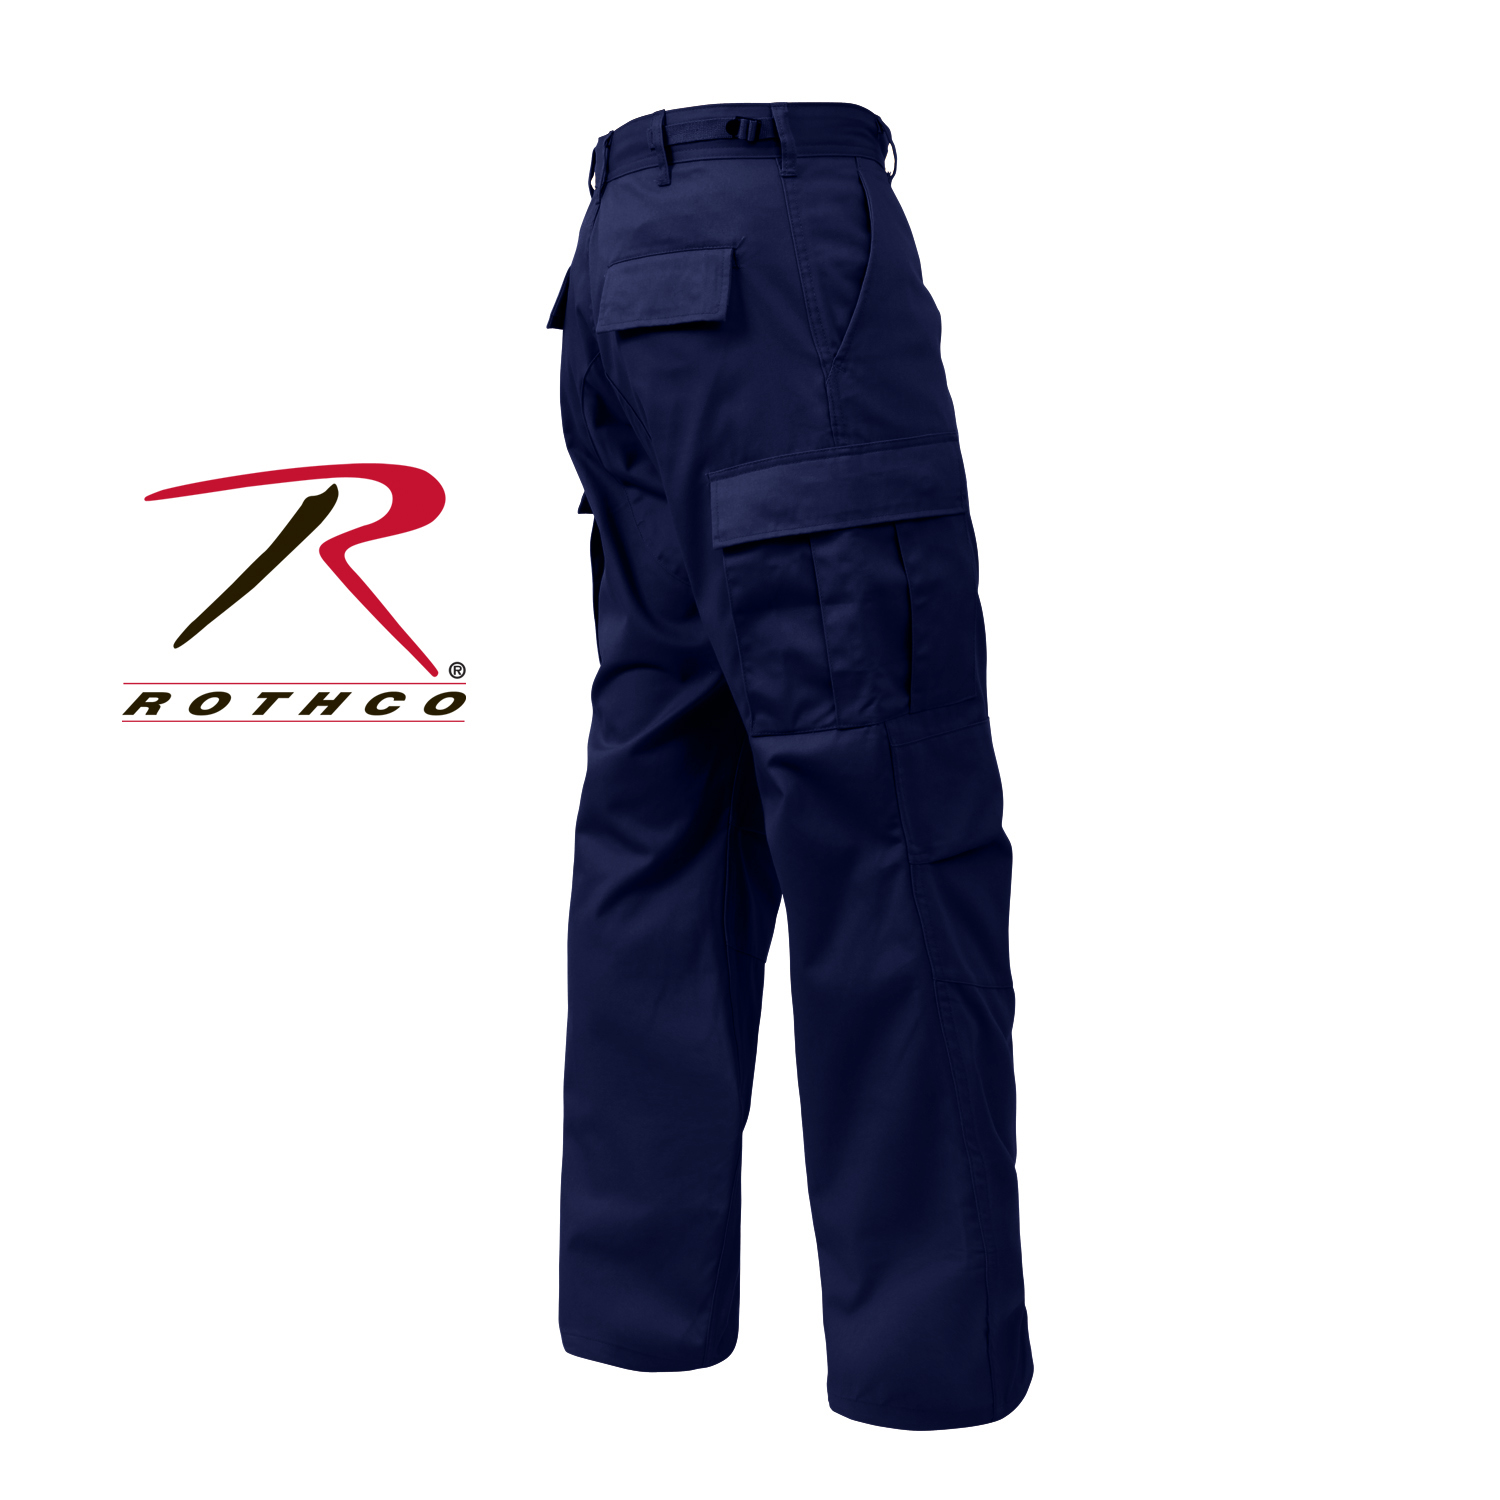 Lastest With Shorts And Pants, This Is Pretty Much A Nonissue Because Both Articles Have A Crotch Which Prevents Upward Movement A Belt And Anything Fixed To The Belt Are Held Securely In Place There Are A Total Of Six Pockets On That Set